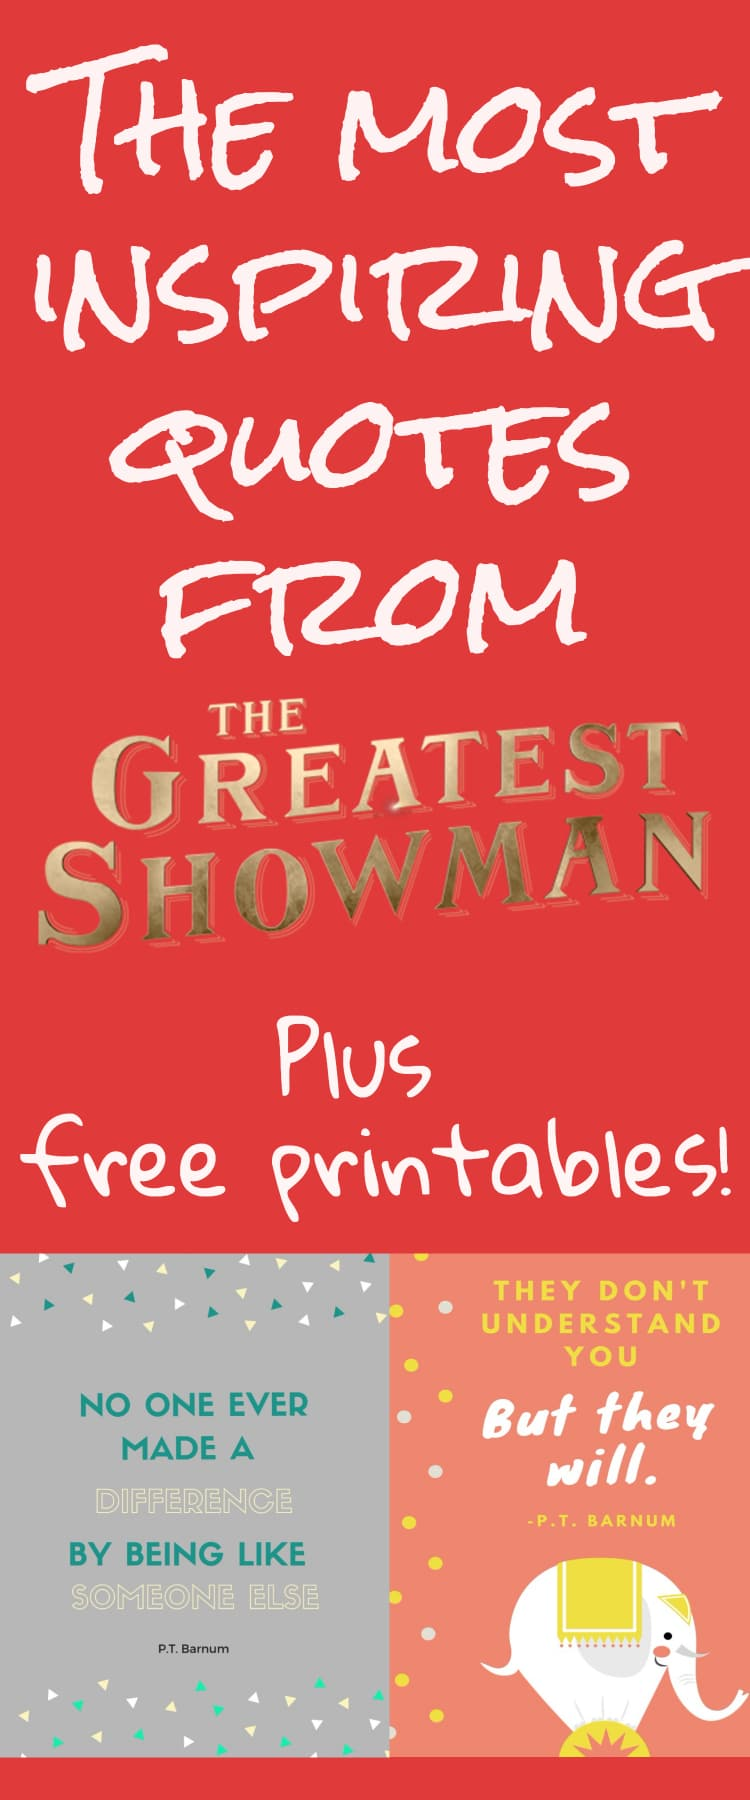 The Greatest Showman / Greatest showman quotes / inspiration / inspiring quotes / motivational quotes / free printables / #printables #quote #inspiration